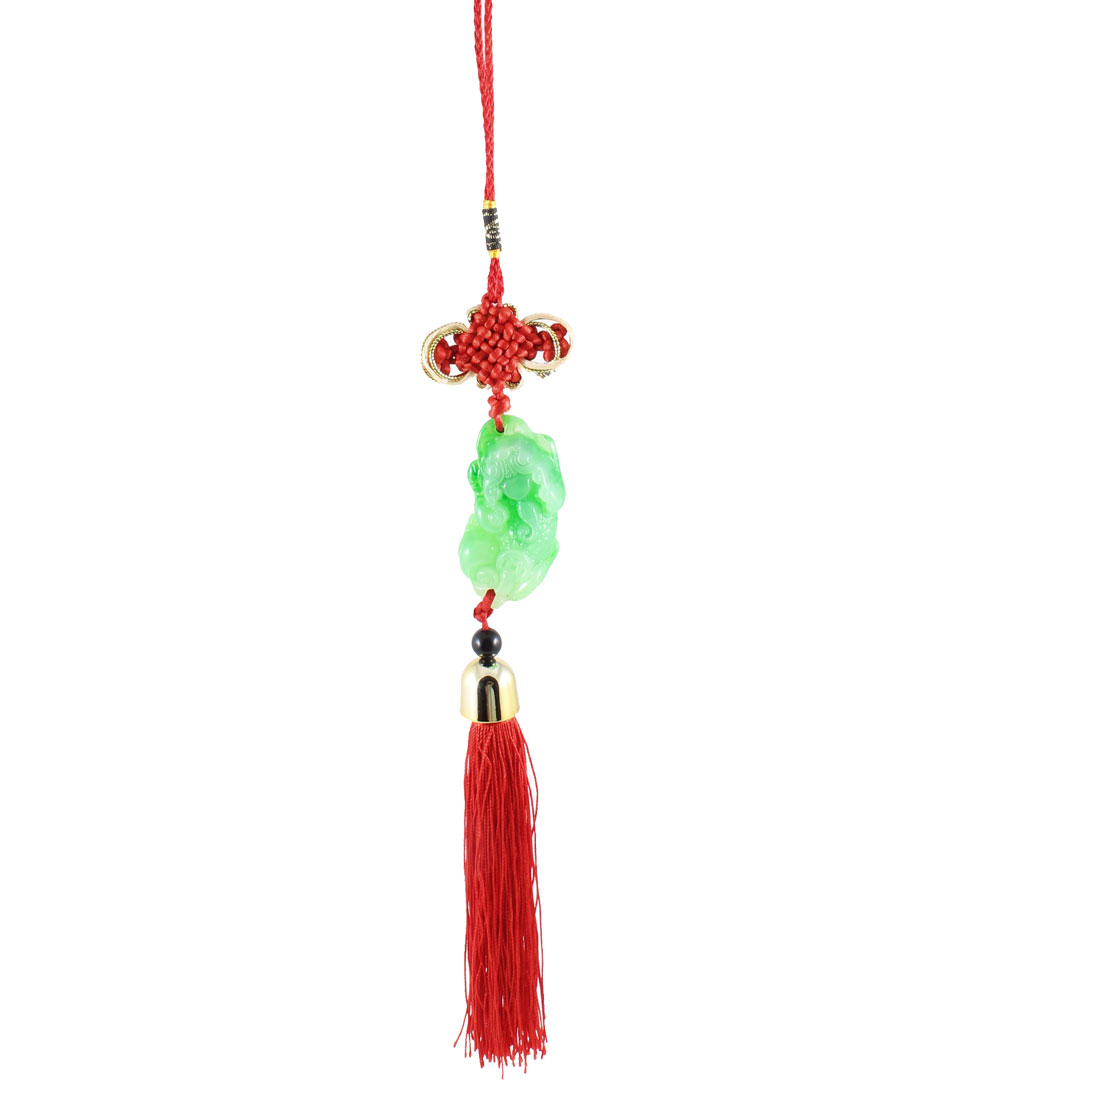 Cars Home Off White Green Pixiu Pandent Red Tassel Hanging Ornament Decor